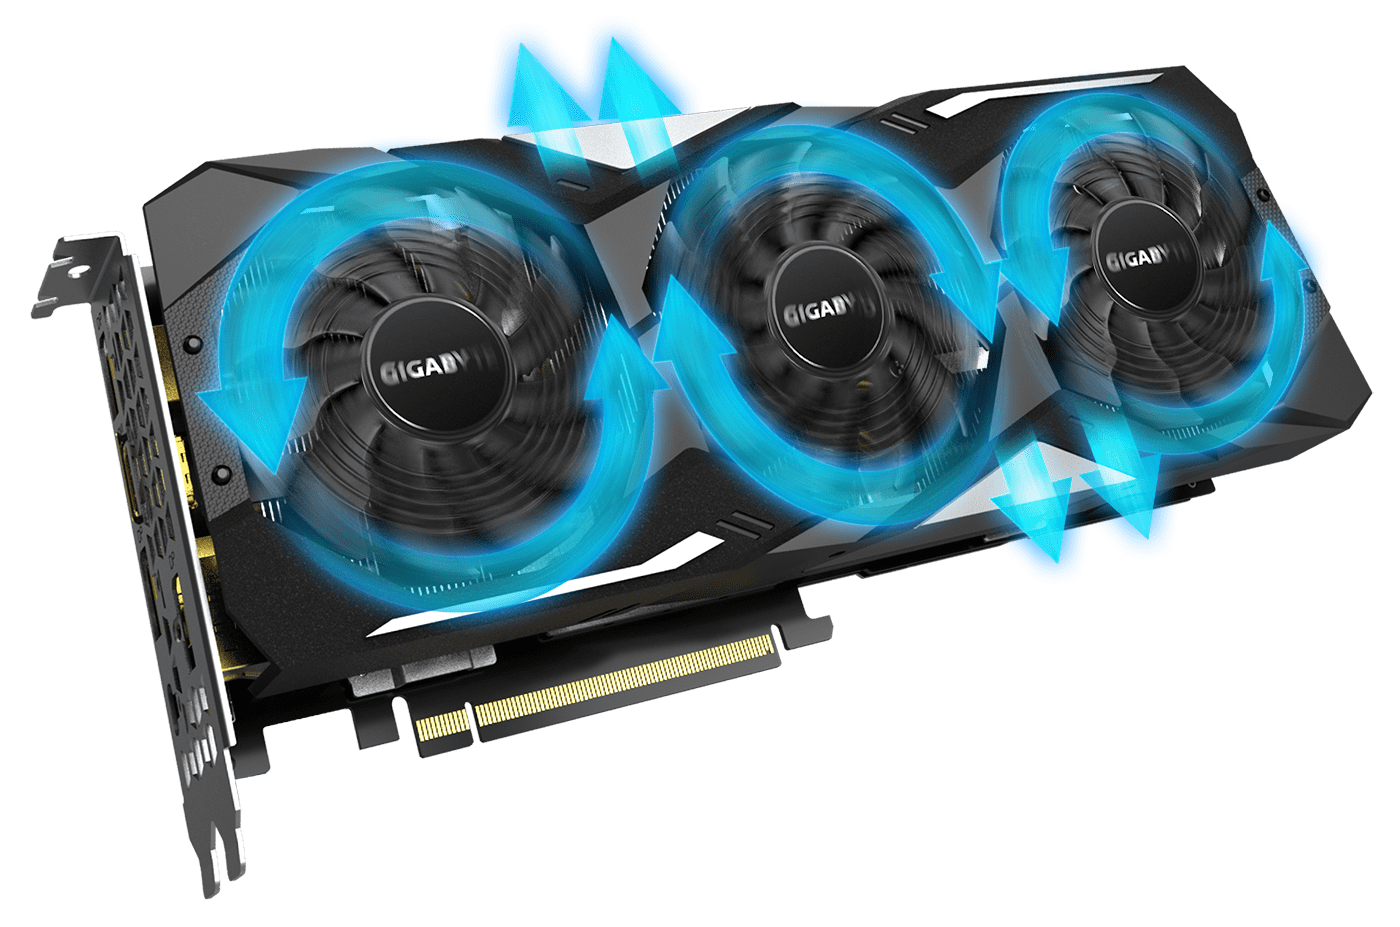 GeForce® RTX 2080 SUPER™ WINDFORCE OC 8G with the alluminum radiator